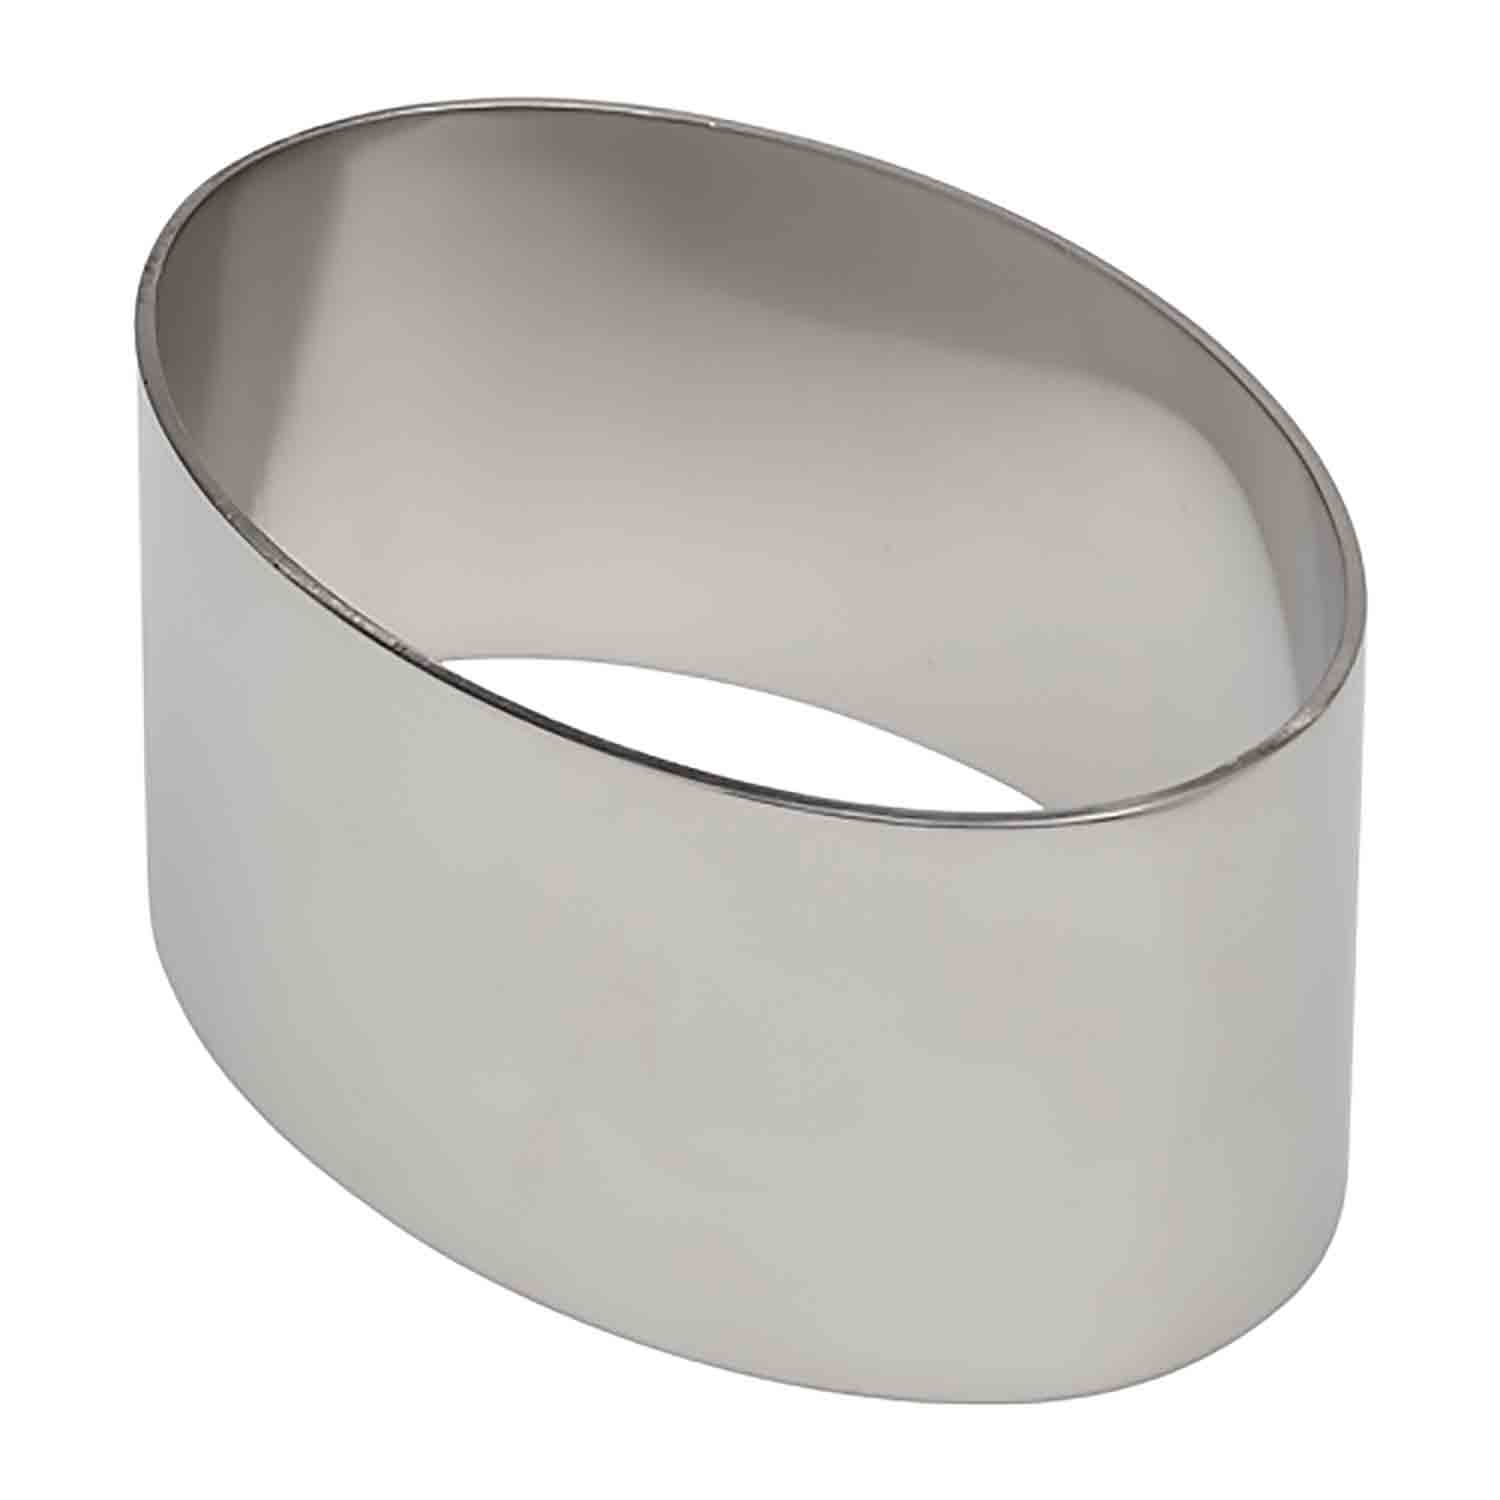 Stainless Steel Oval Cookie Cutter